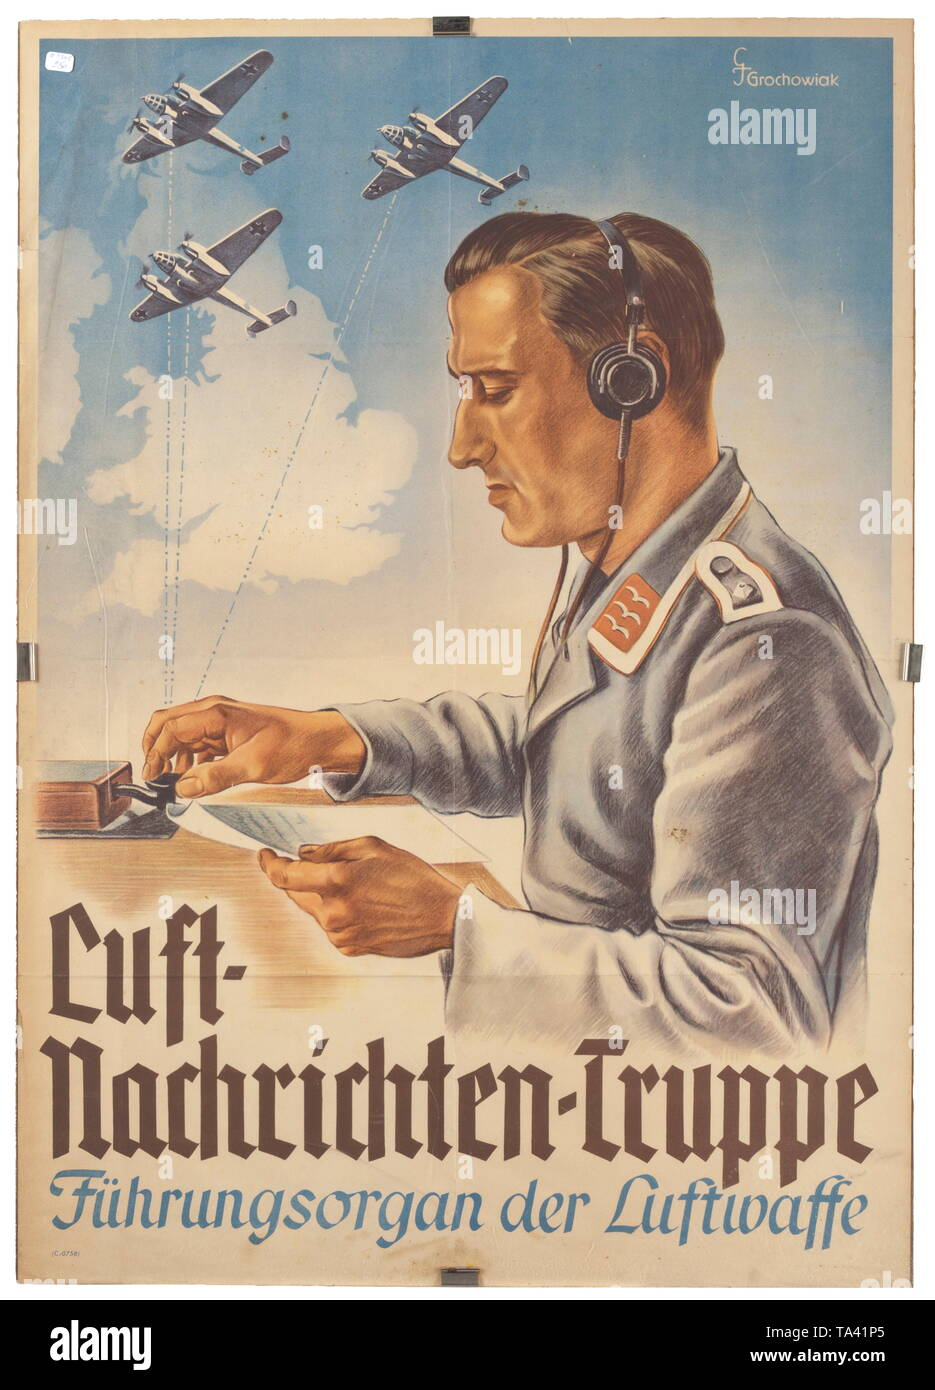 A poster advertising the 'Luft-Nachrichten-Truppe' (tr. 'airforce-signal-unit') design by Thomas Grochowiak (1914 - 2012) historic, historical, Air Force, branch of service, branches of service, armed service, armed services, military, militaria, air forces, object, objects, stills, clipping, clippings, cut out, cut-out, cut-outs, 20th century, Editorial-Use-Only - Stock Image